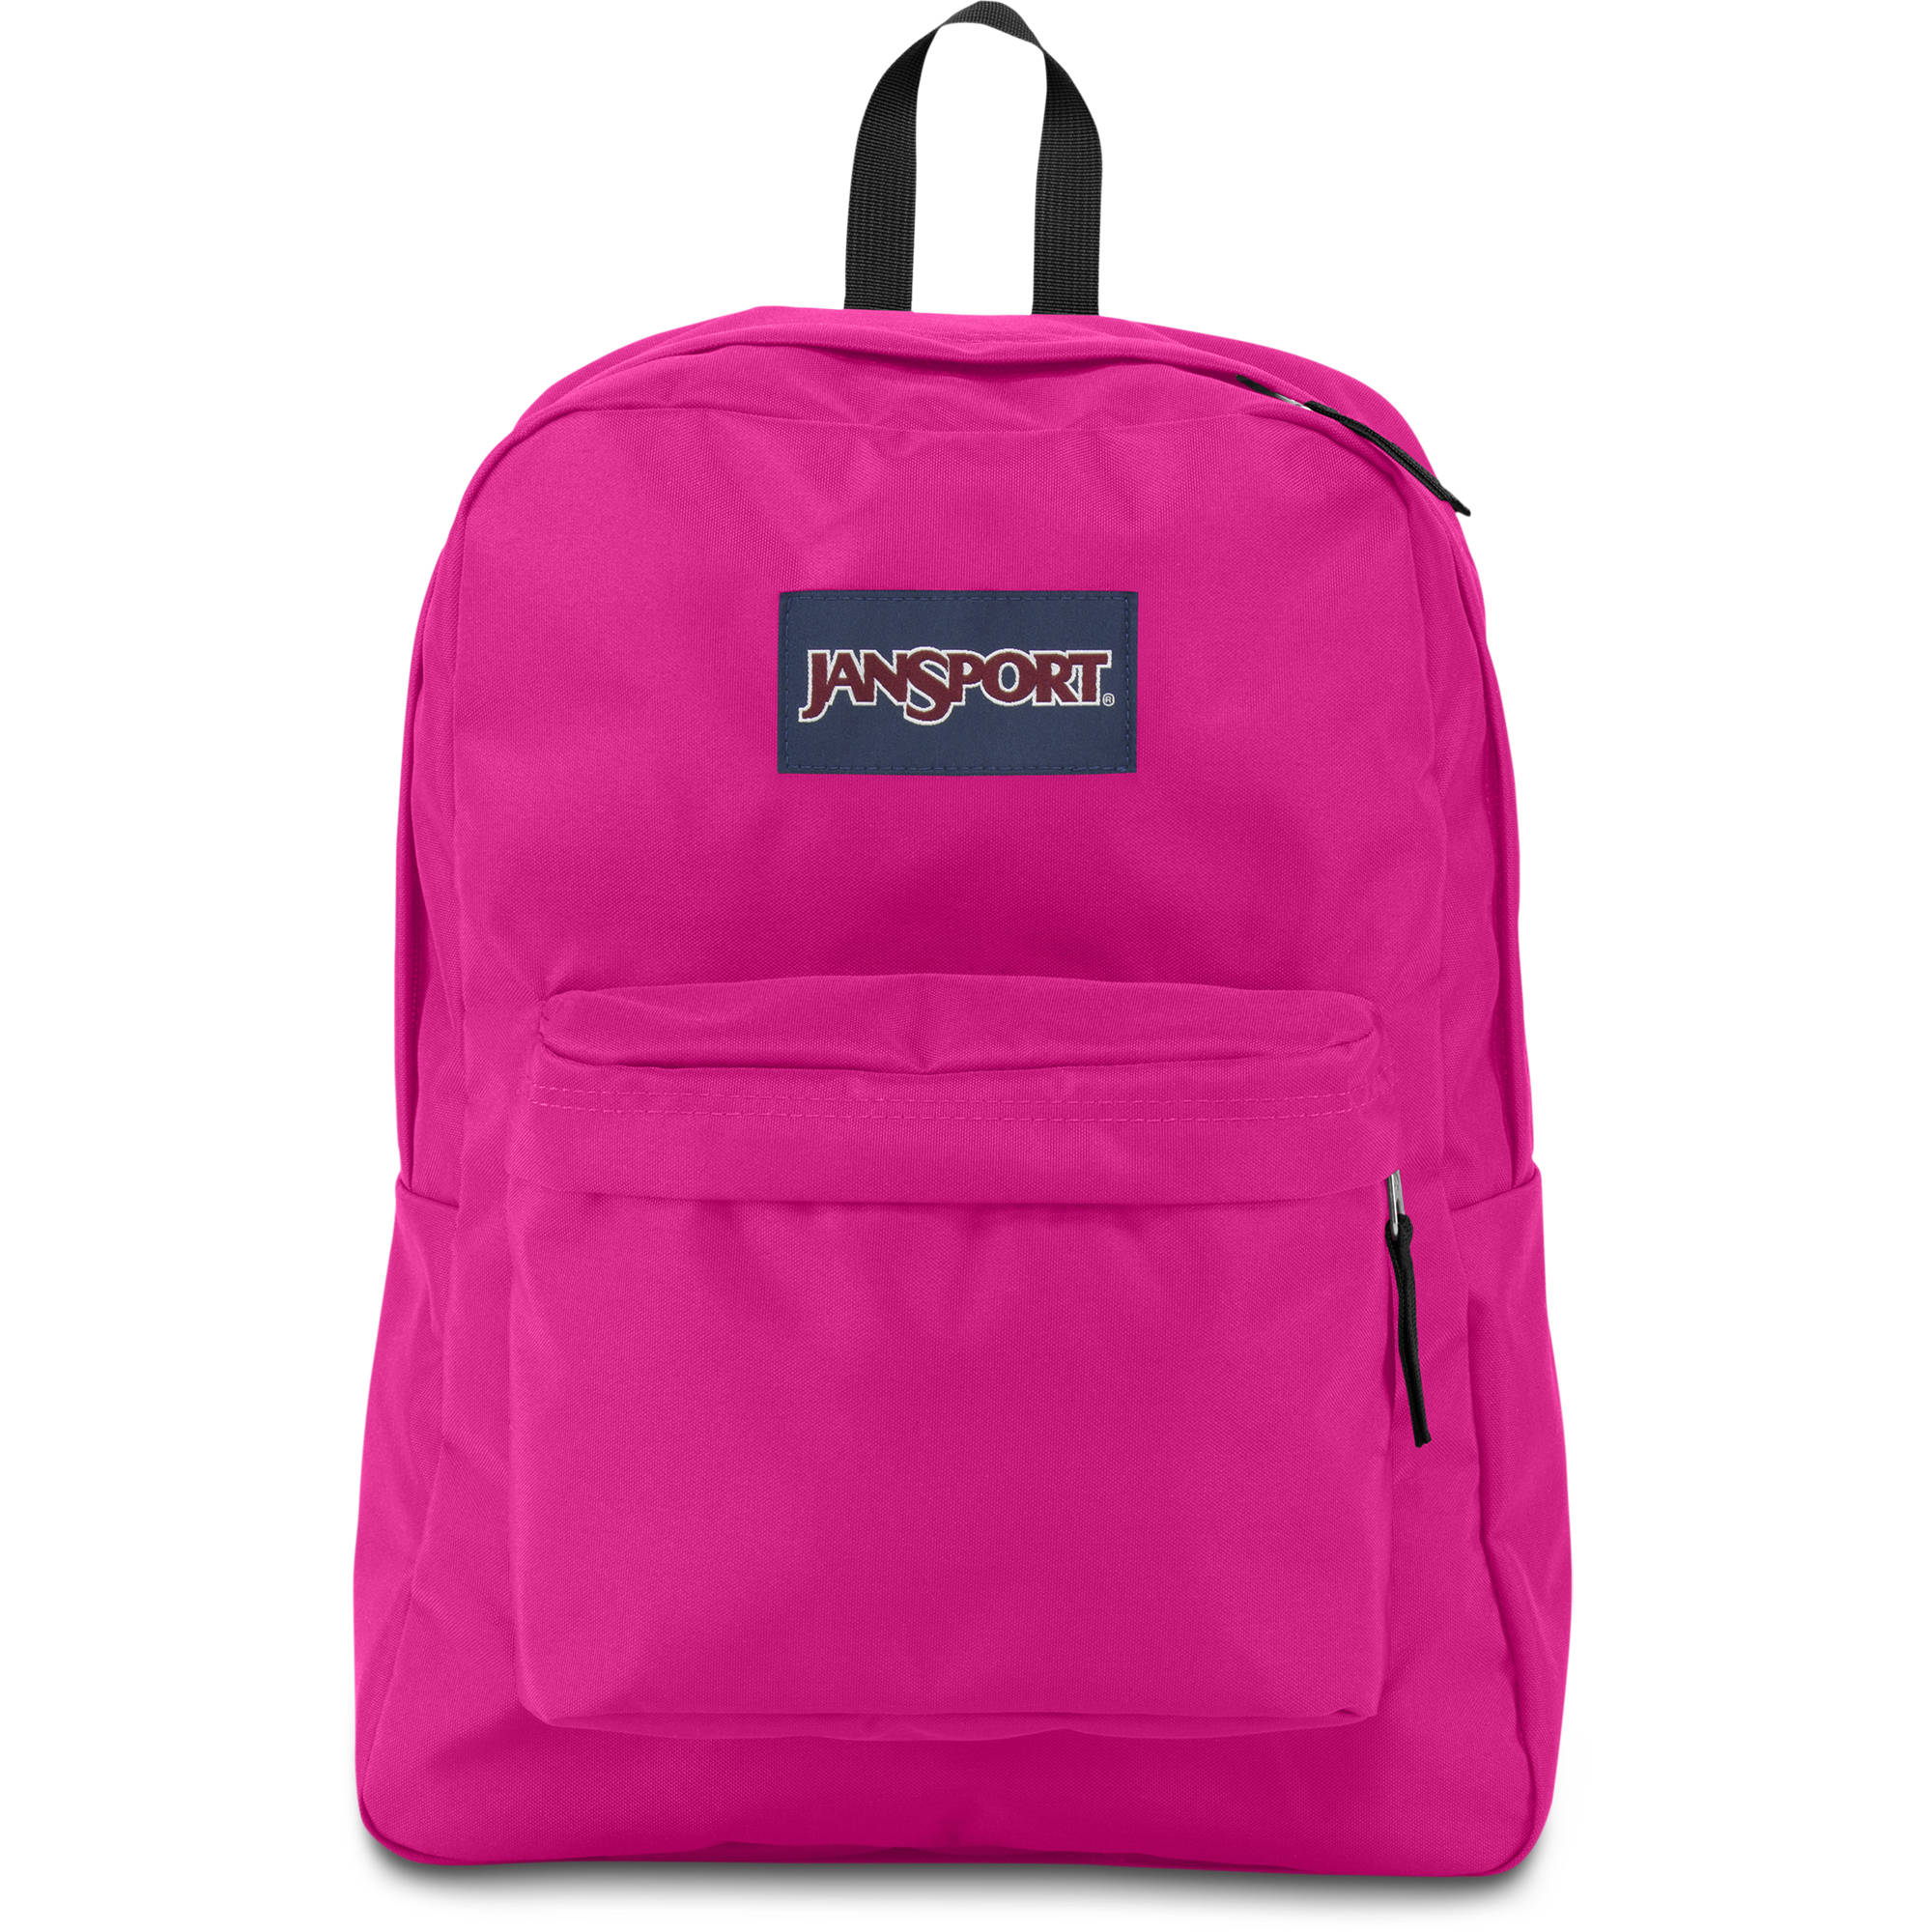 Places To Buy Jansport Backpacks - Crazy Backpacks